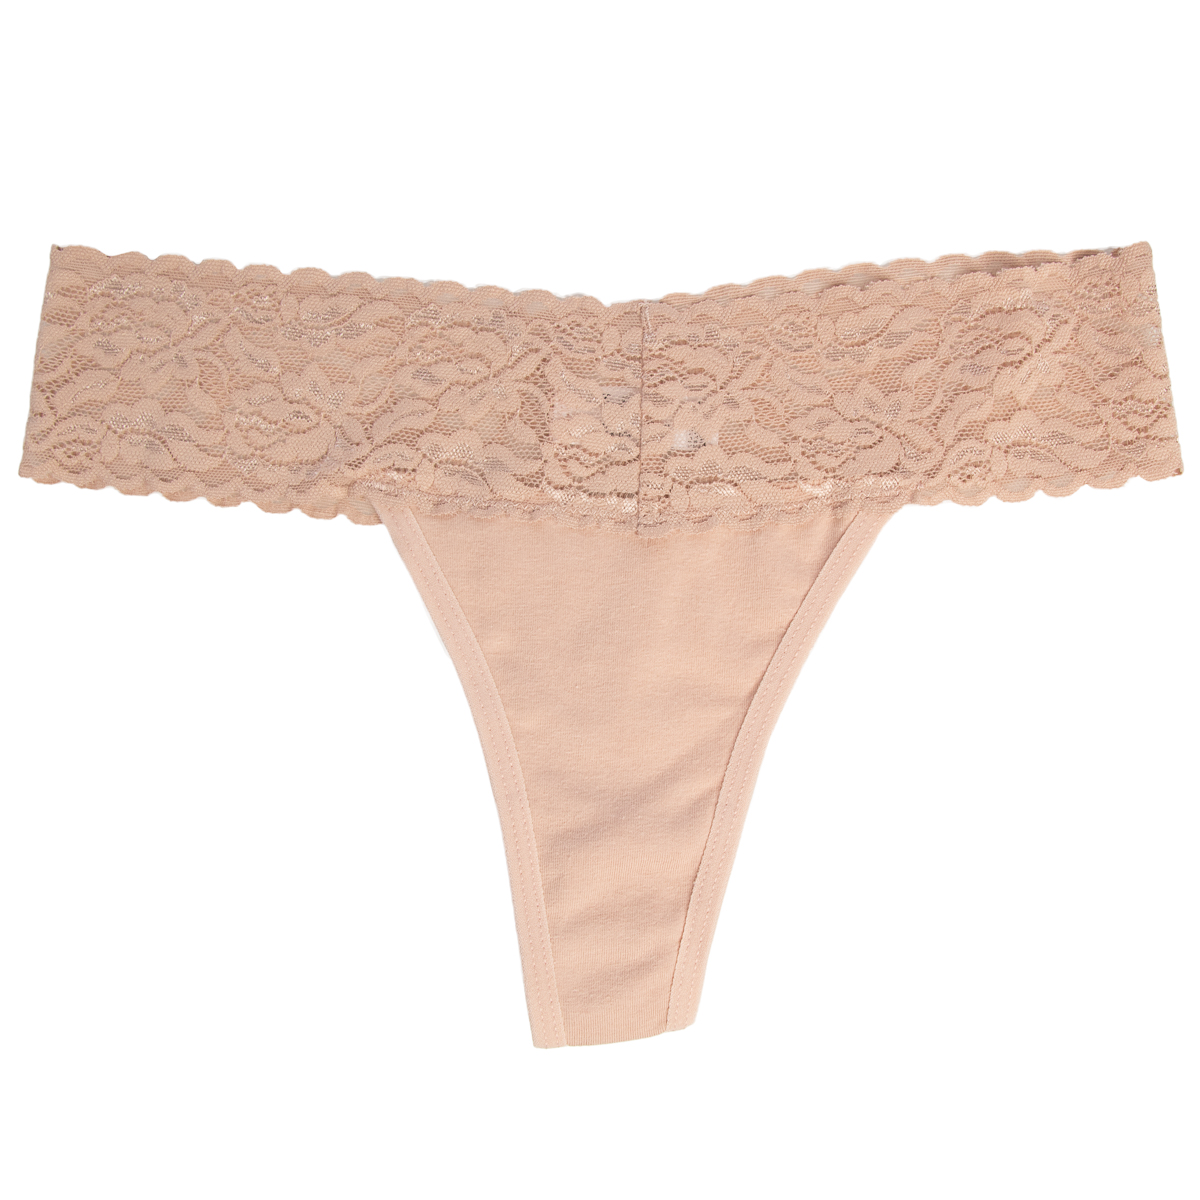 6-Pack-Cotton-Lace-Thong-Underwear-For-Women-Soft-Sexy-Lingerie-Panties-Thongs thumbnail 20